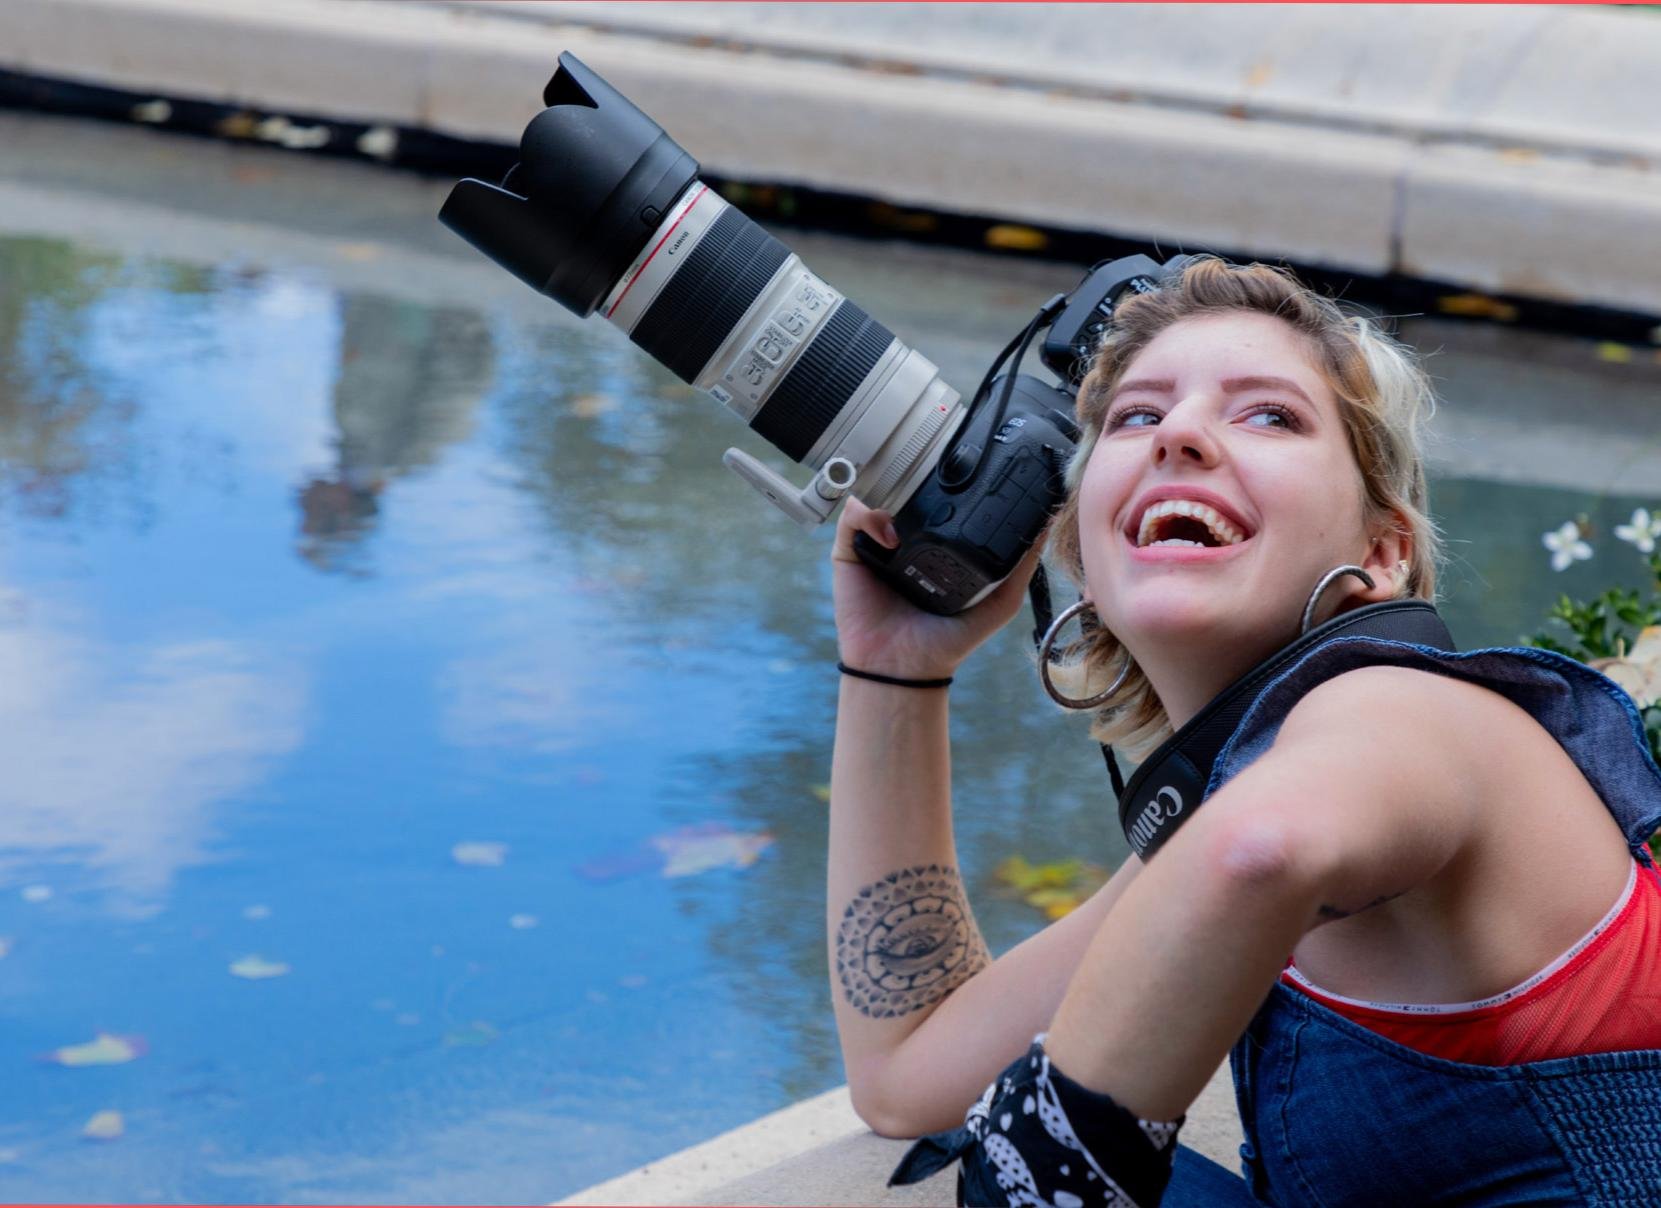 UArts students smiles with a camera in hand